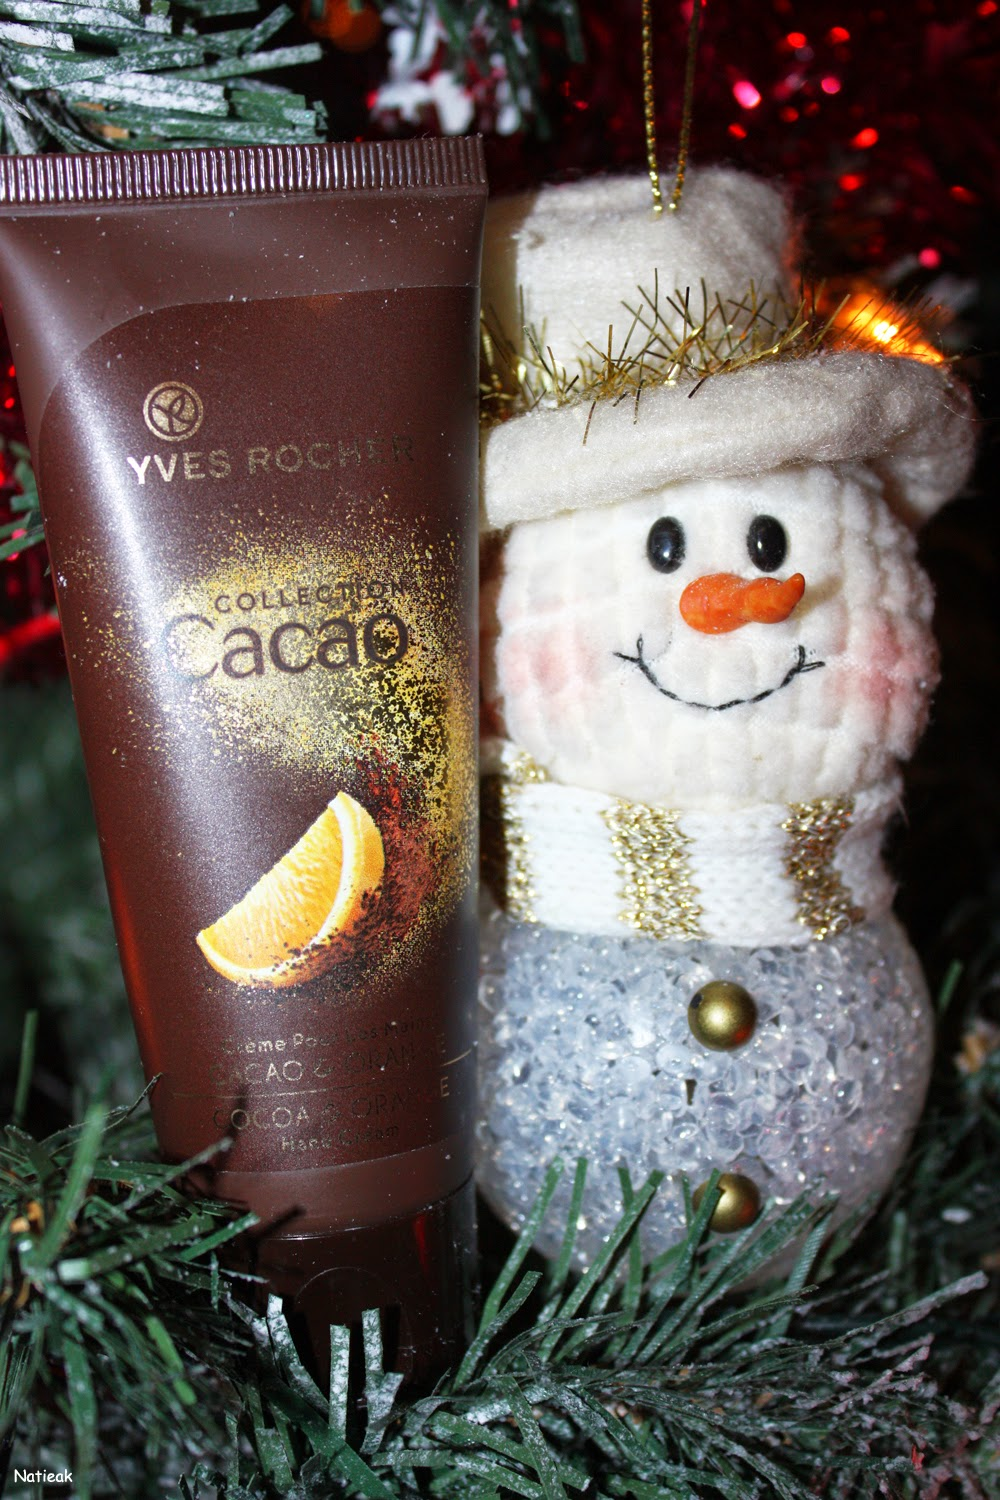 collection Noël Cacao orange d'Yves Rocher